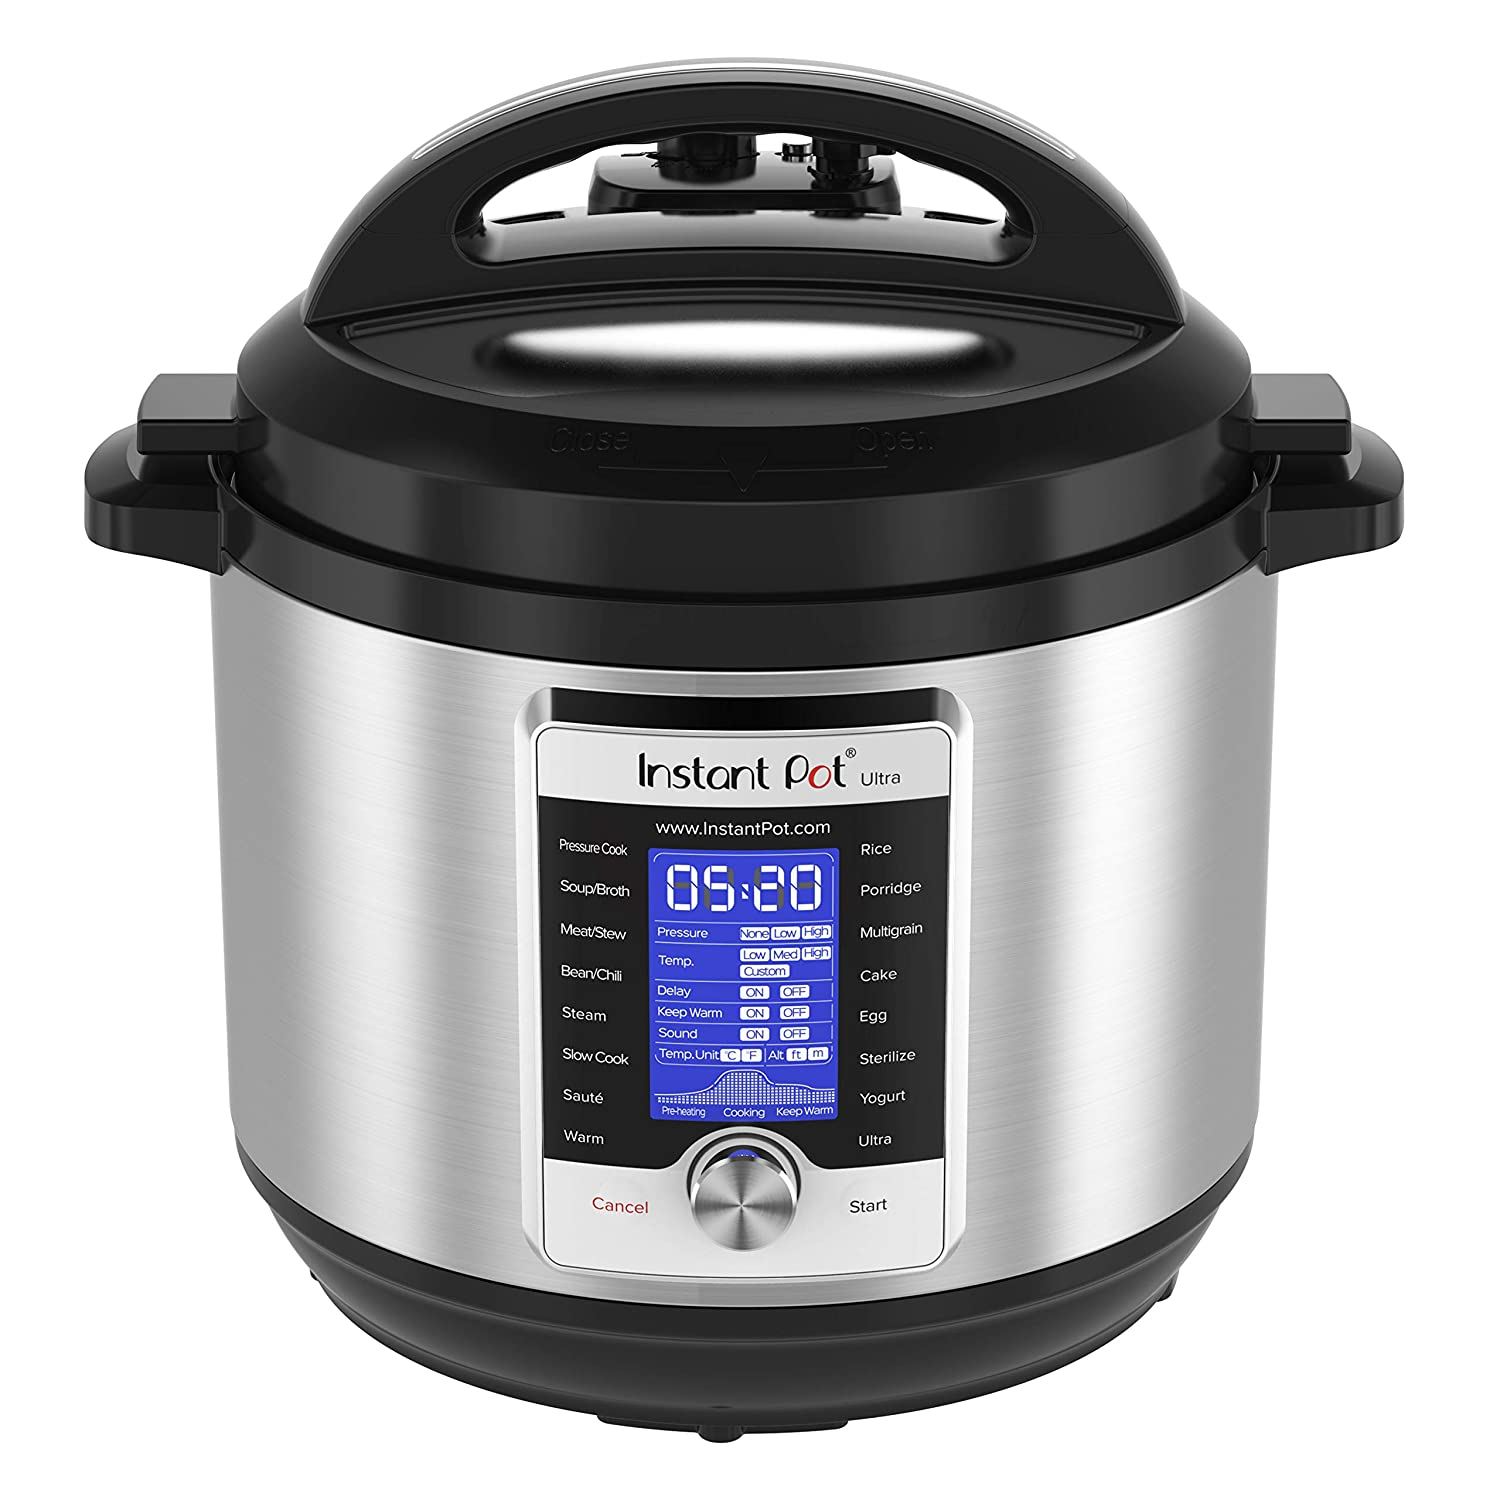 Ninja 2-in-1 6 Quart Stove Top Digital Slow Cooker Cooking System with Recipes